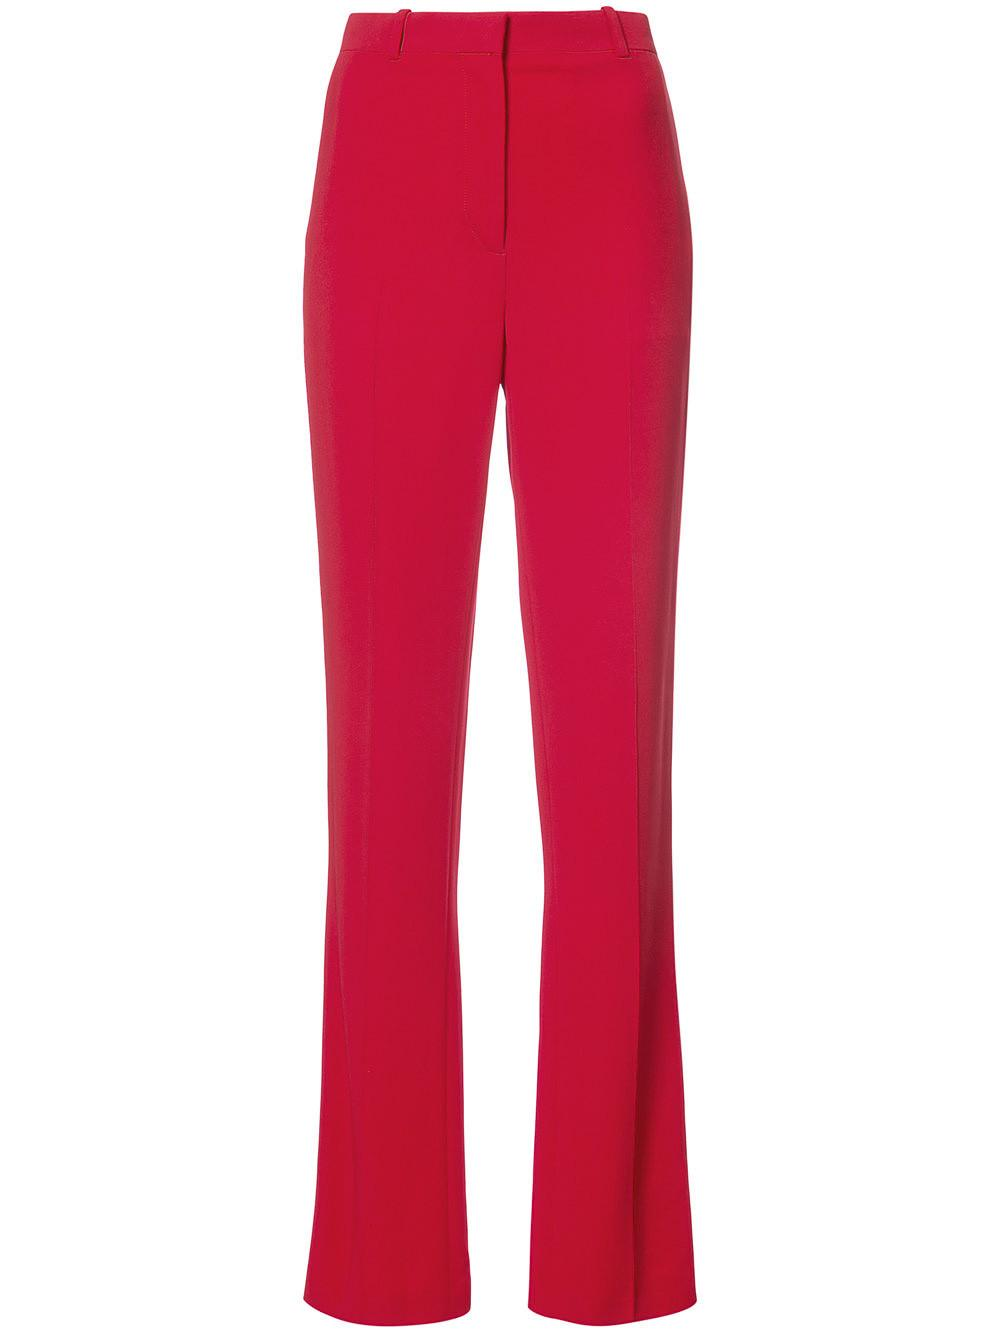 Givenchy Red Tailored Straight Leg Trouser